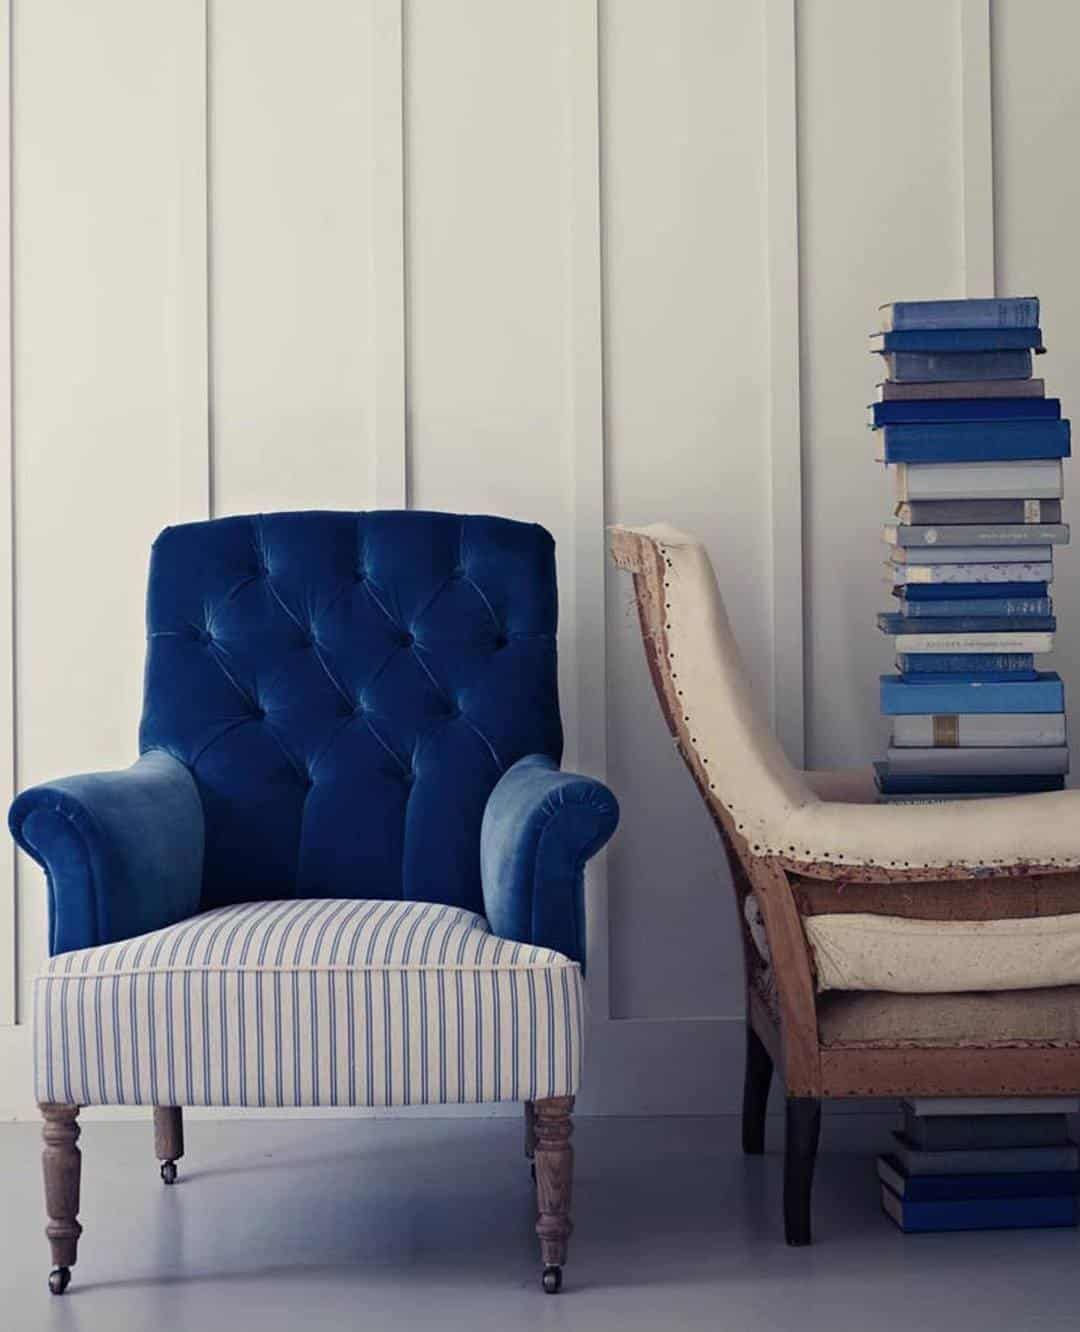 Blue And White Striped Chair How To Reupholster A Chair Upholstery Chair Armchair Striped